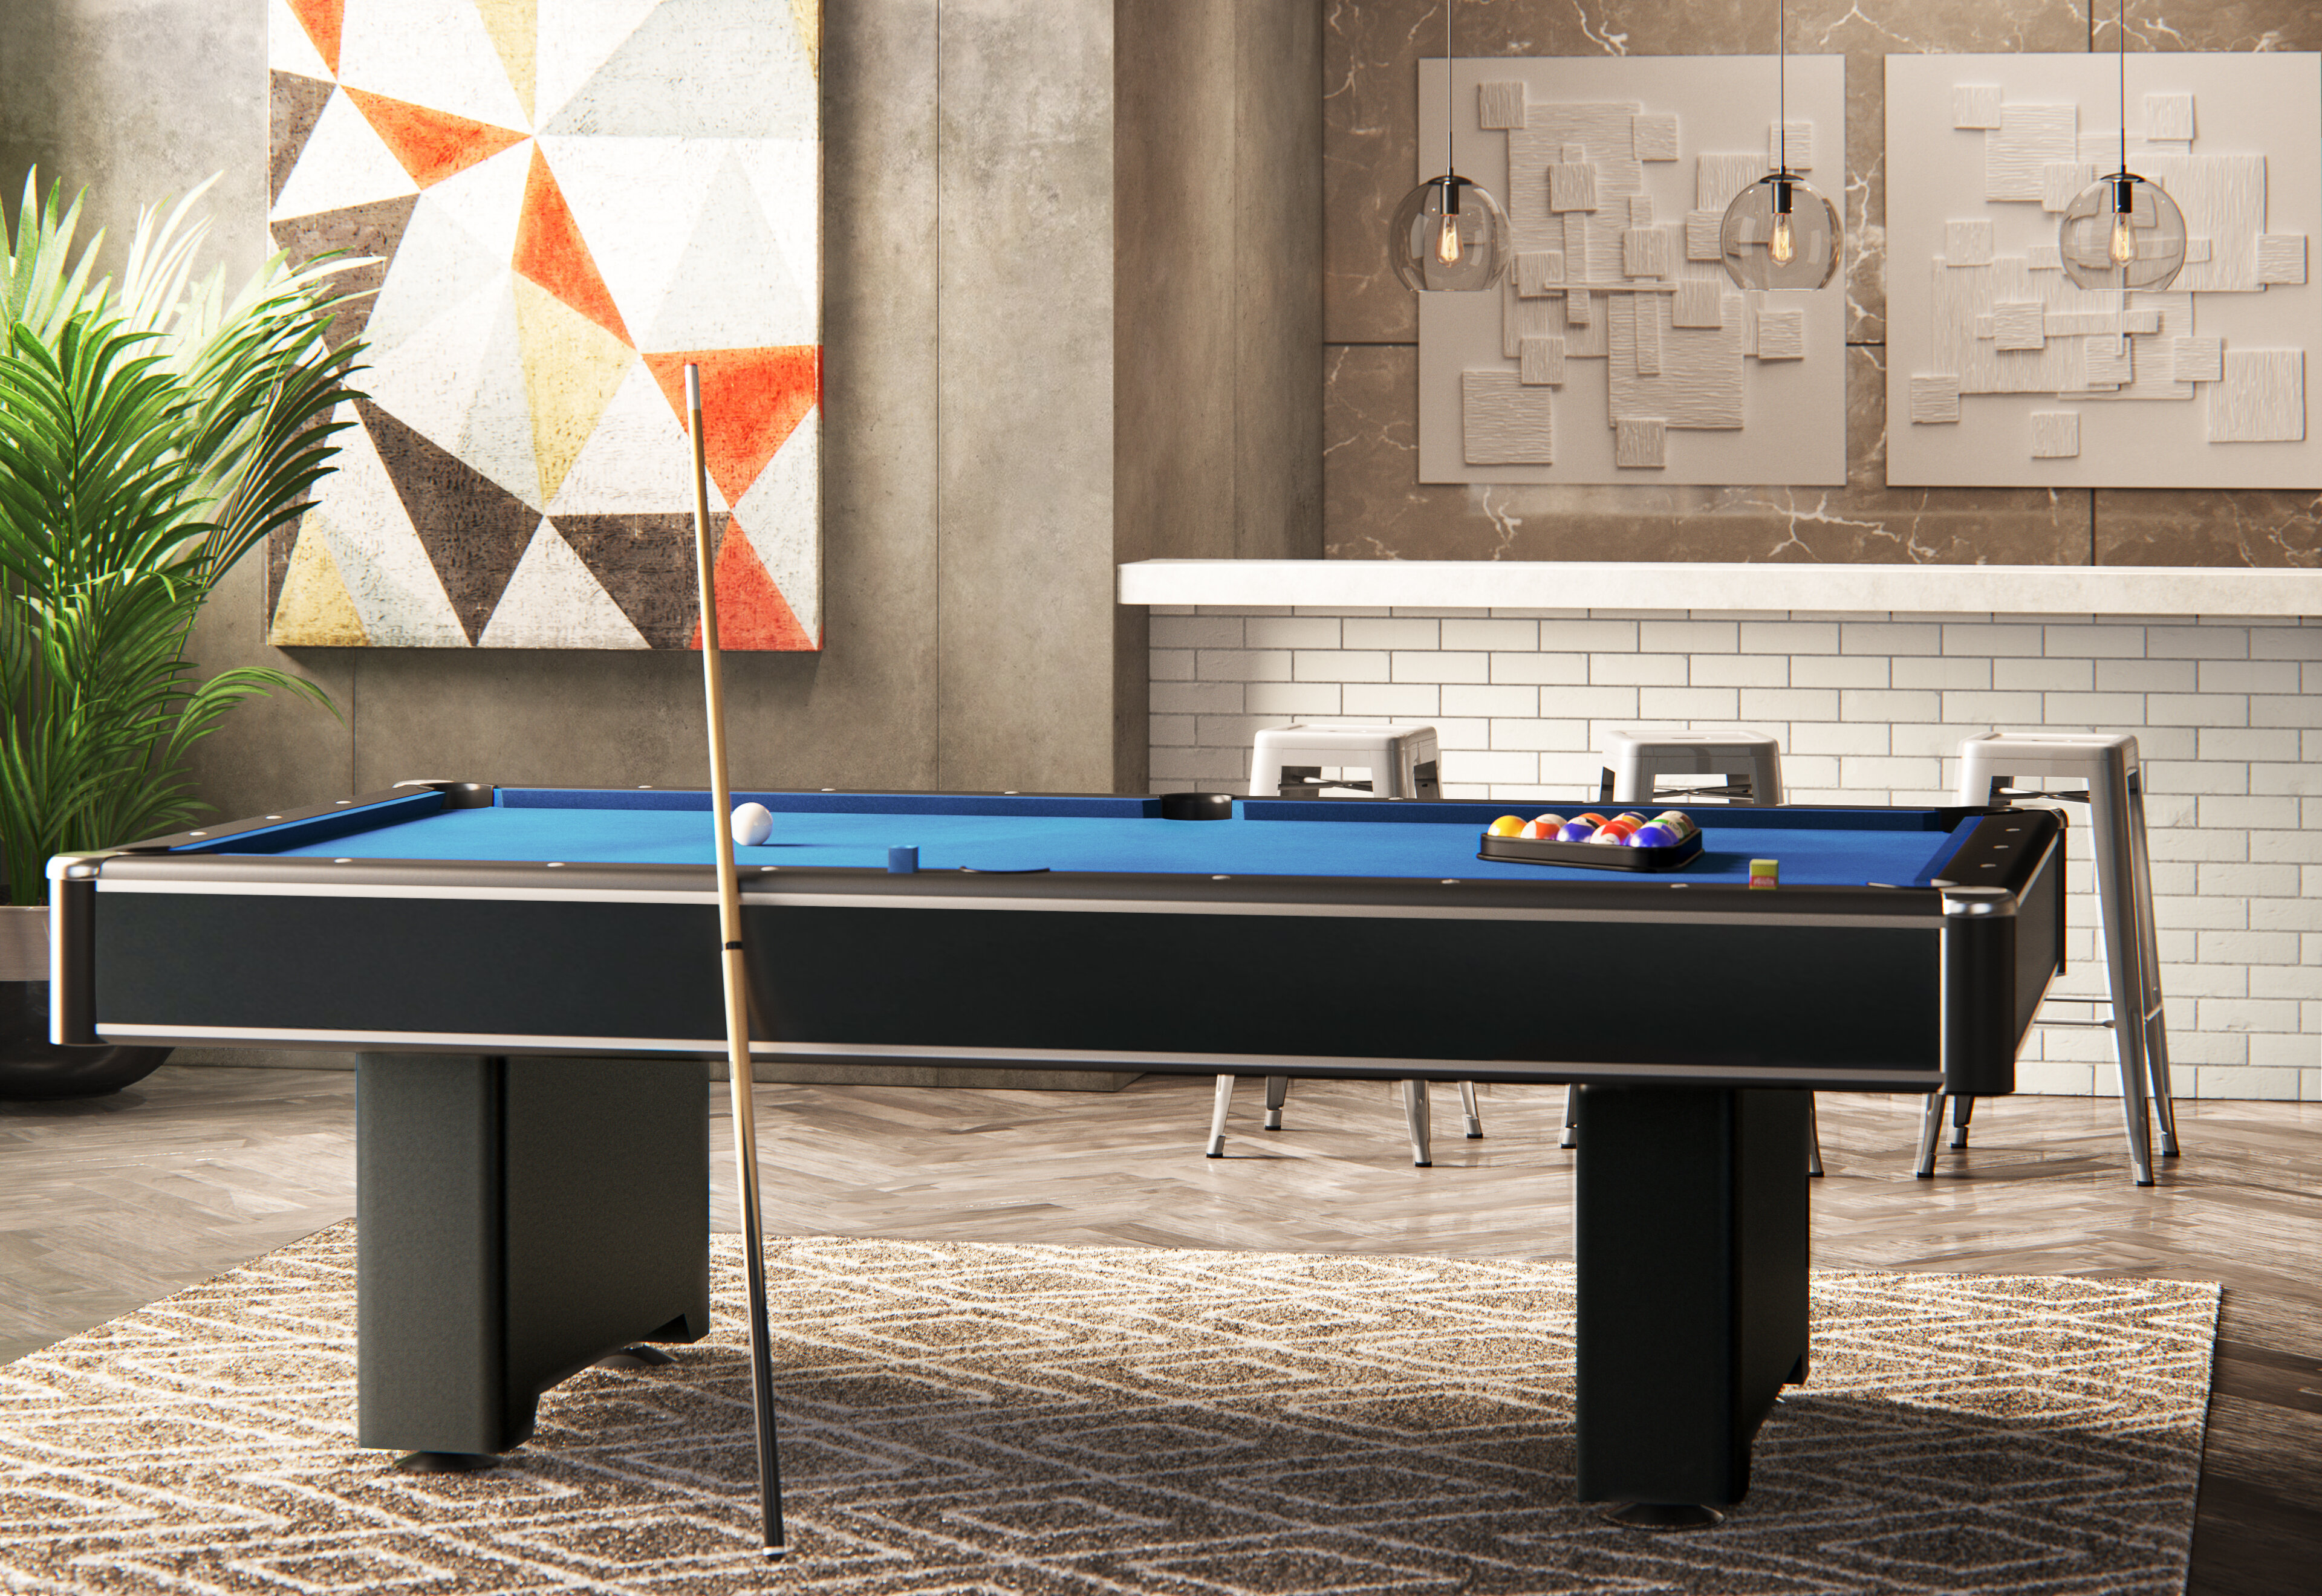 Game Room Ideas Creating The Ultimate Entertainment Space Wayfair